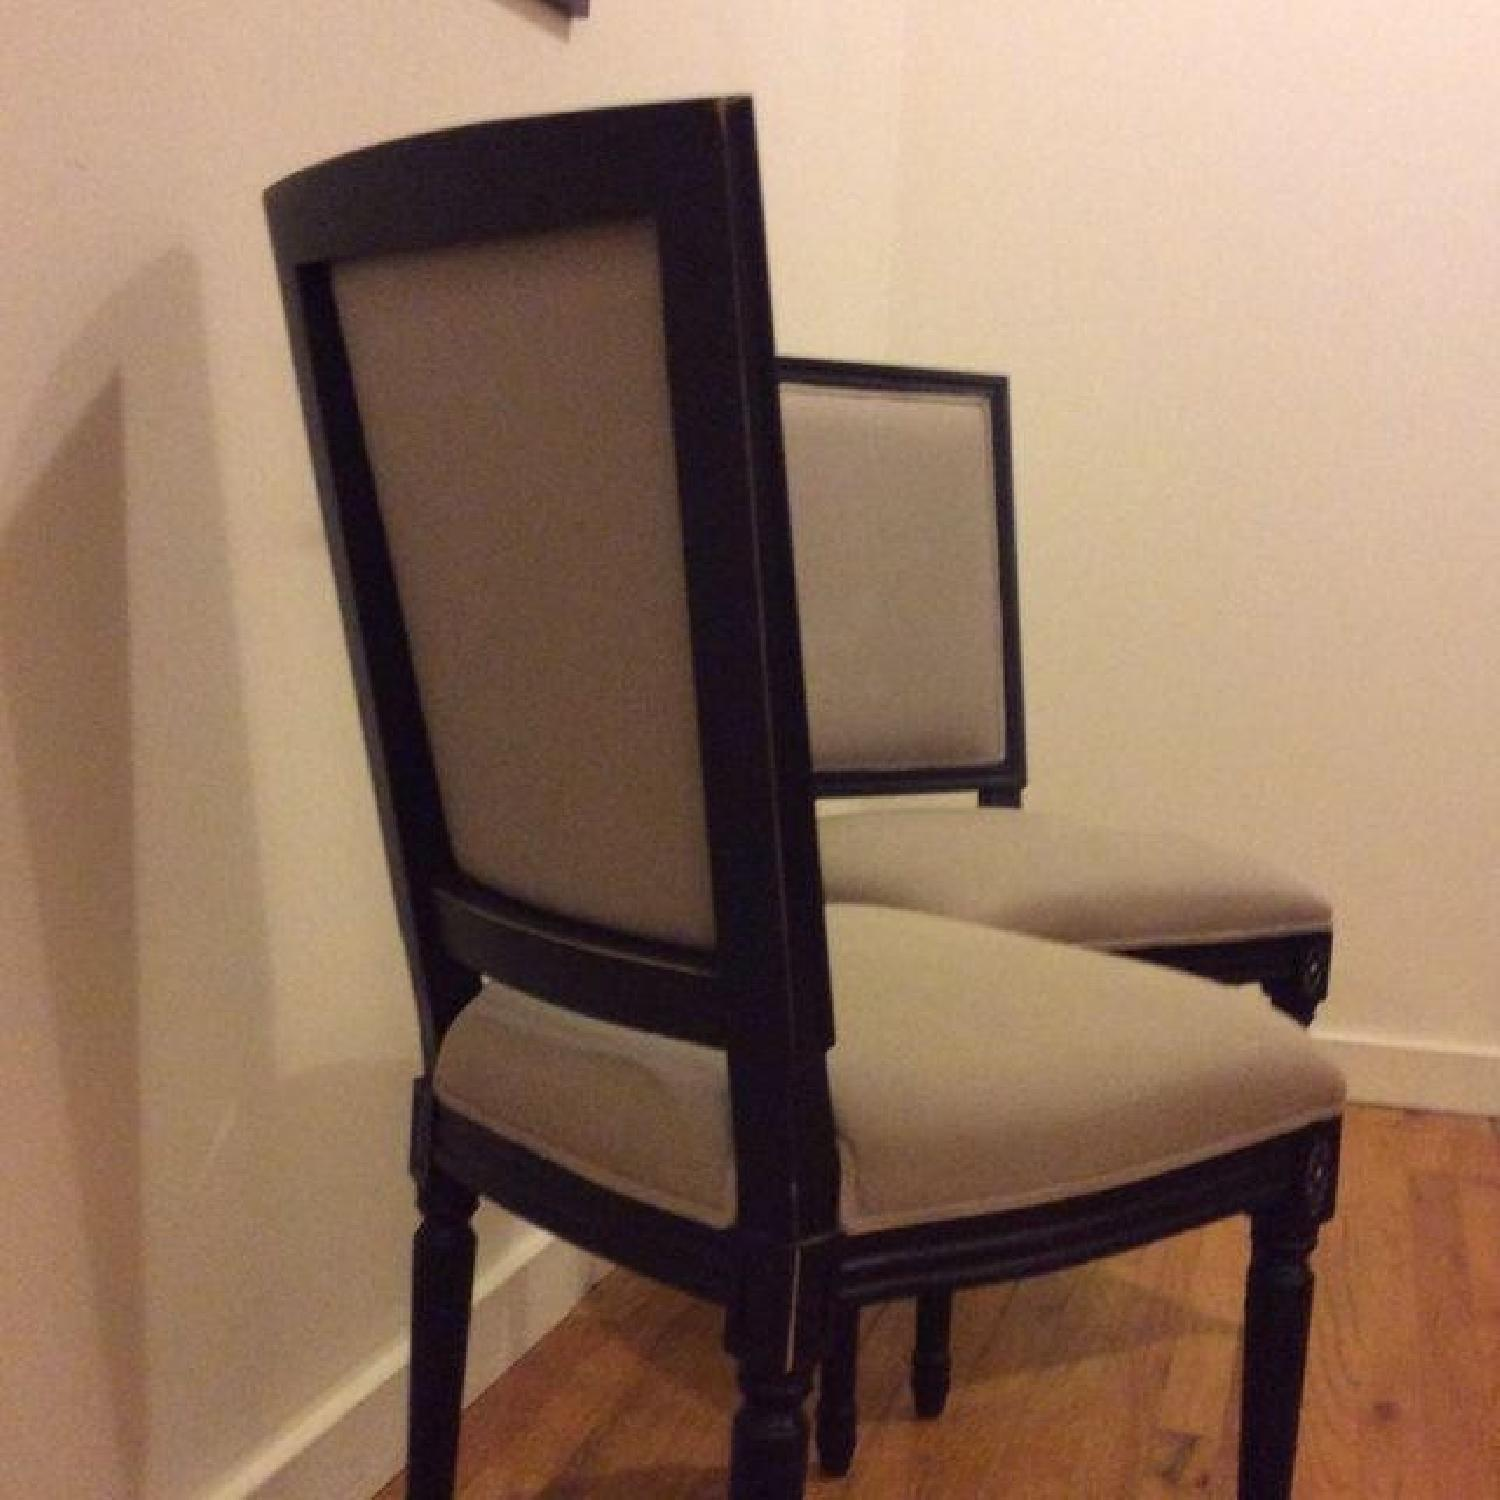 Horchow Wood Upholstered Dining Chairs - Pair - image-1